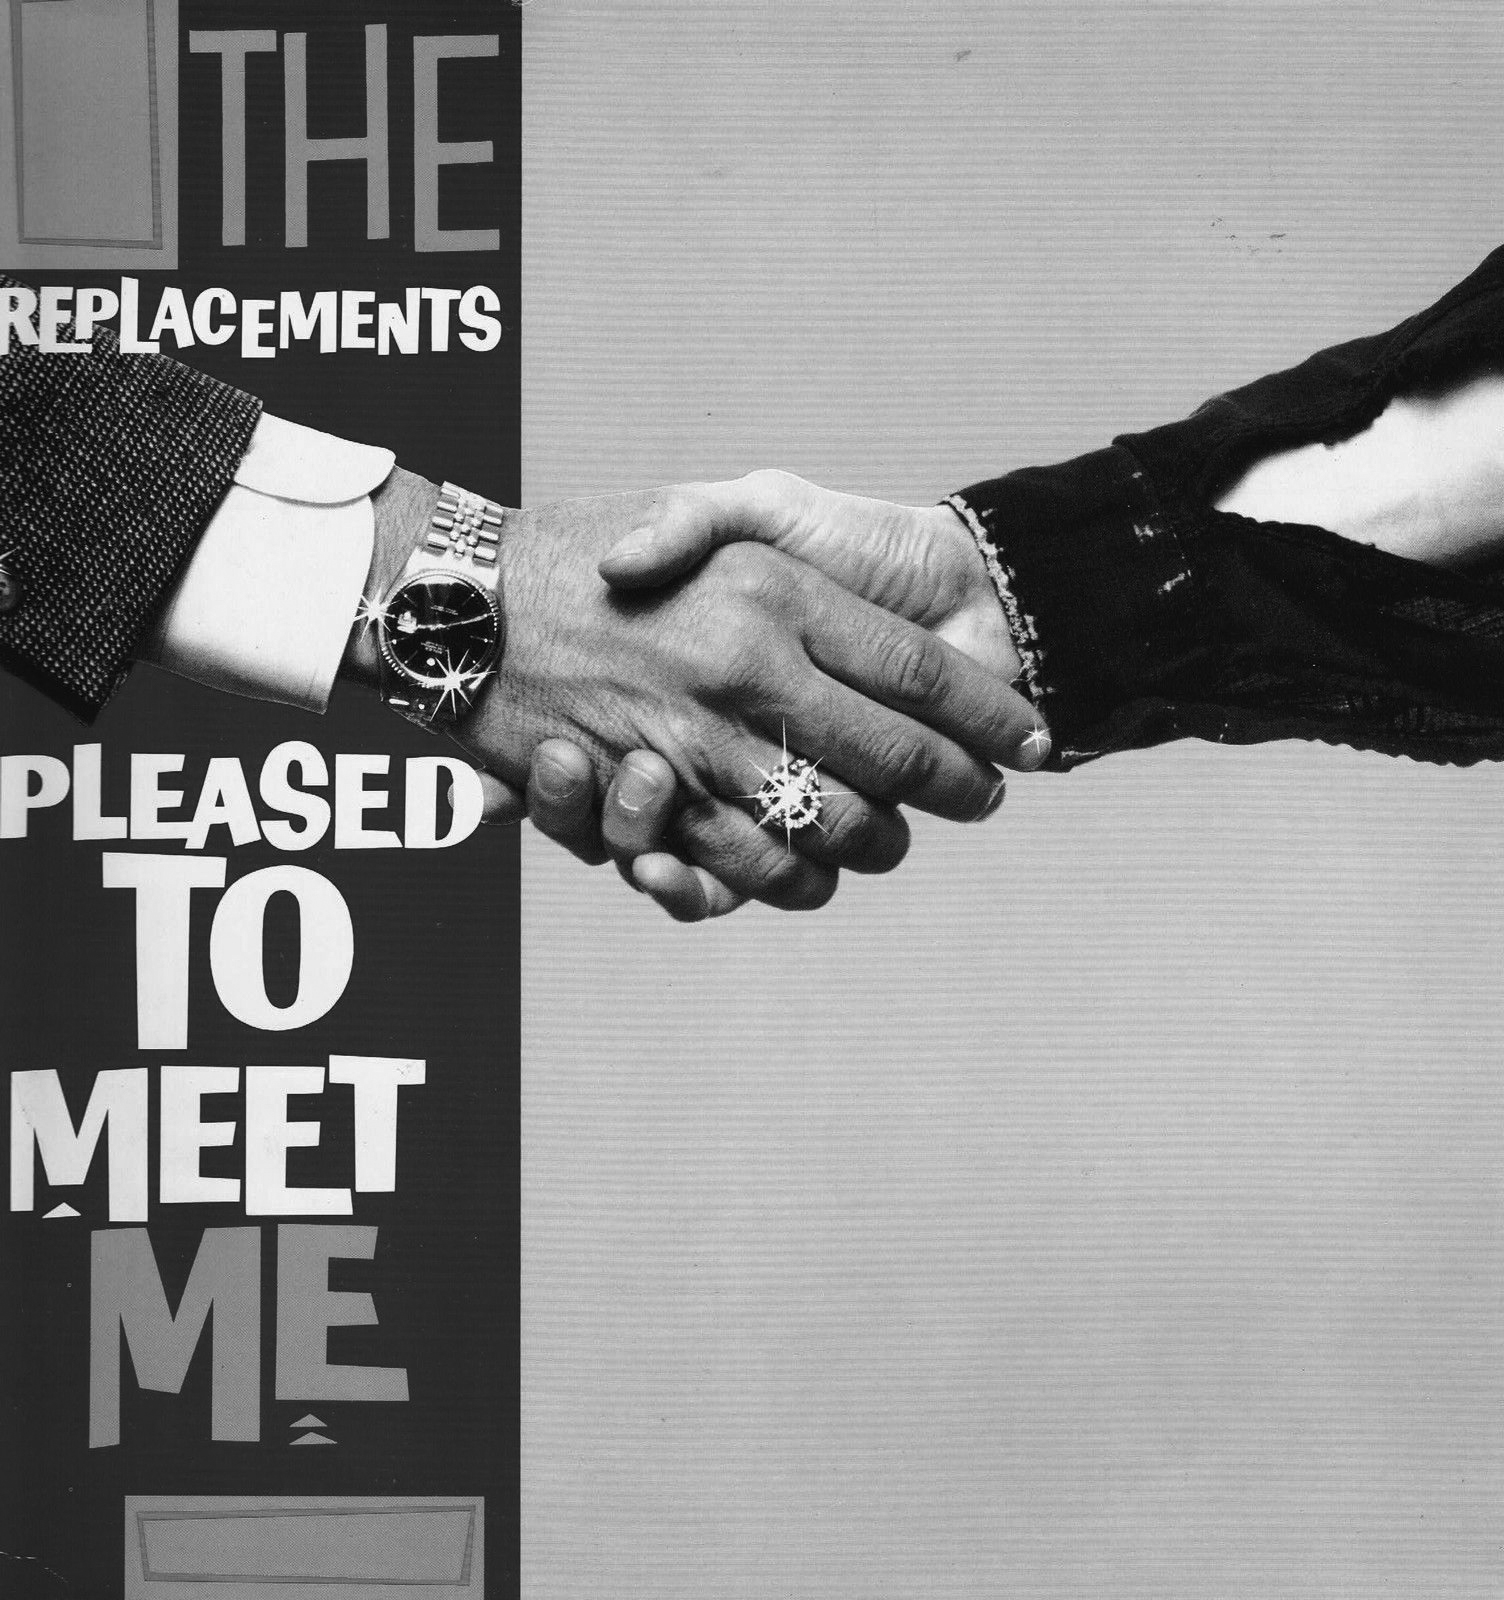 The-Replacements-Pleased-To-Meet-Me-925-557-1-LP-Vinyl-Record-281322932626